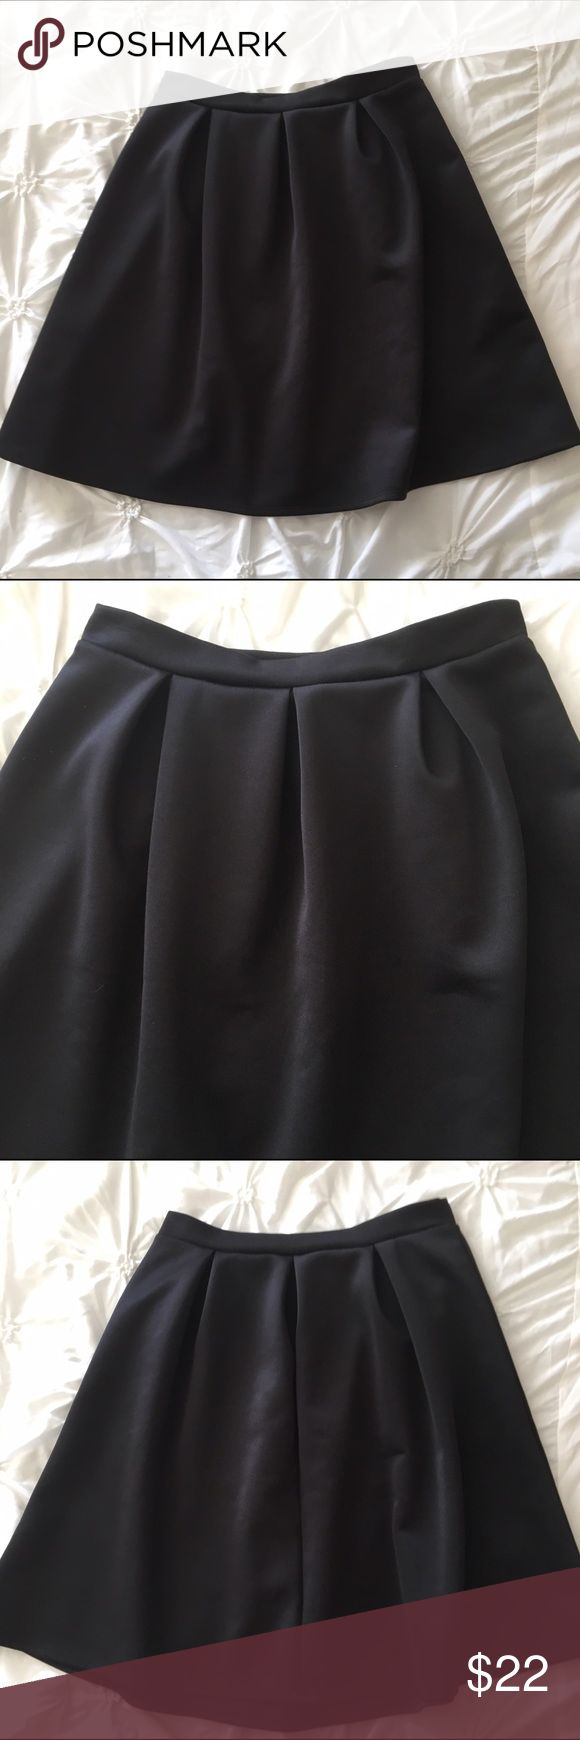 Super Cute Black Skirt Size 10 • Stretchy material • Only worn once ABN Skirts A-Line or Full